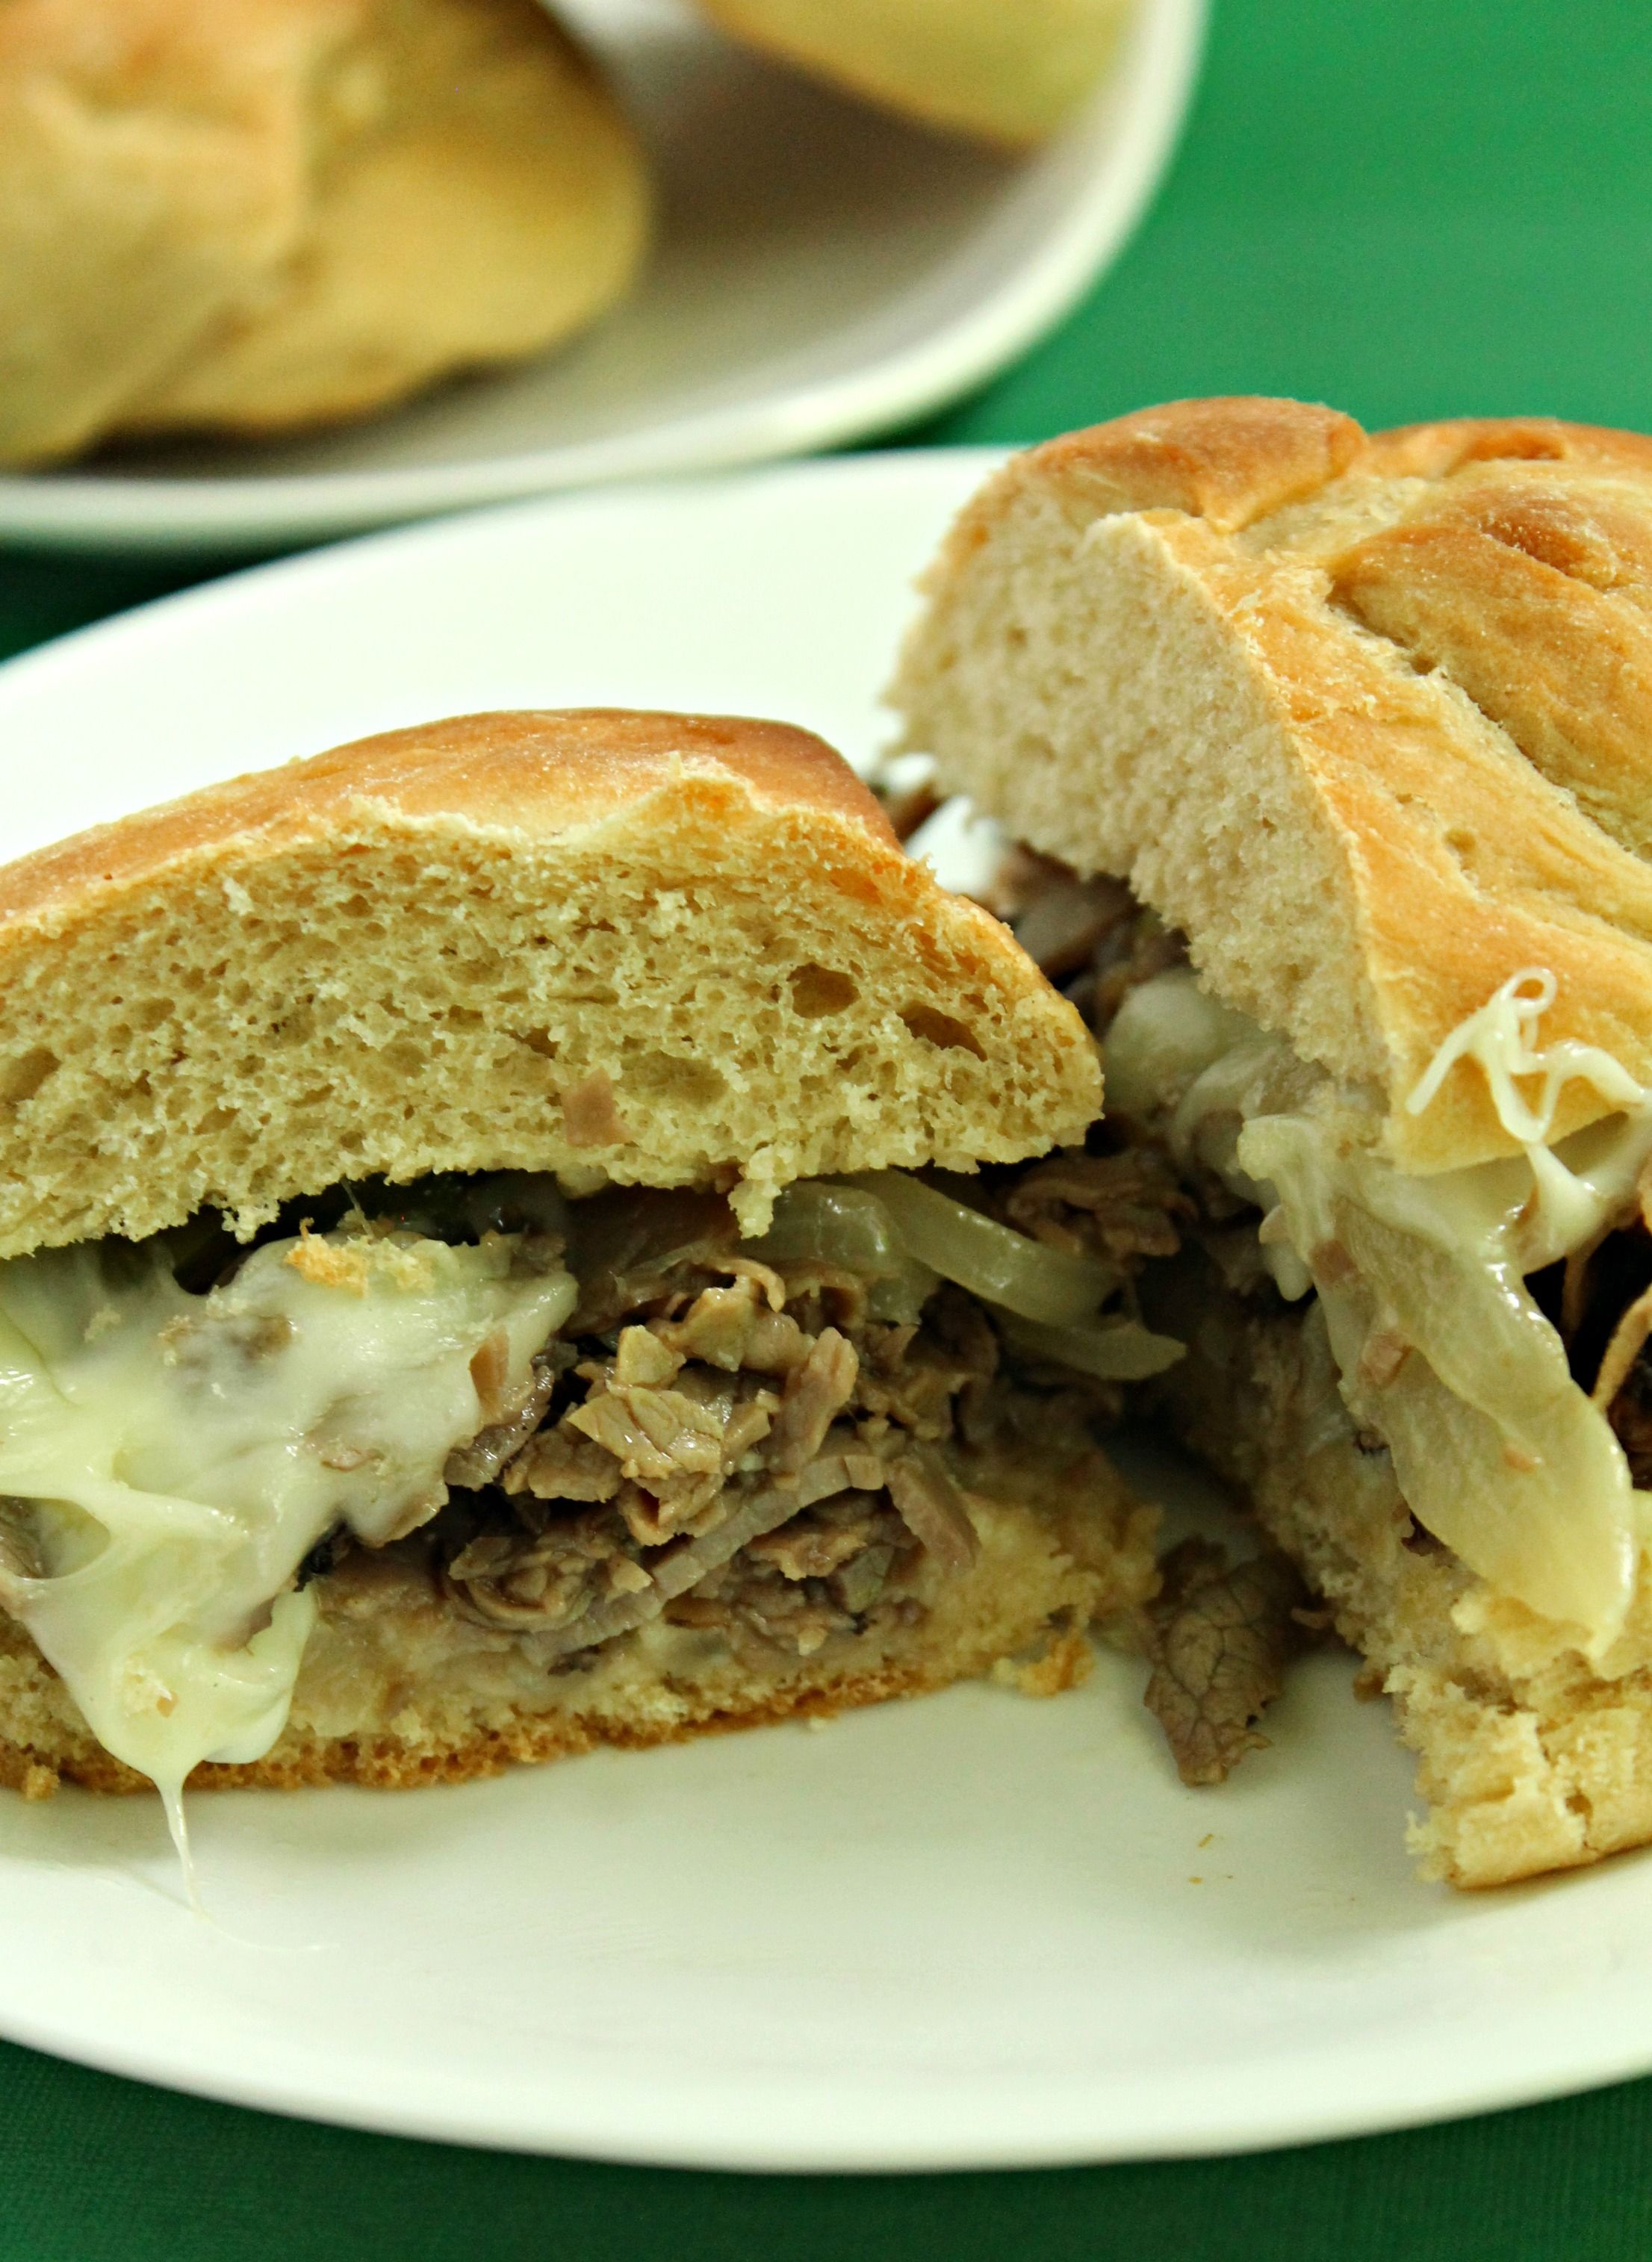 Cheesesteak.  Quick and easy dinner!